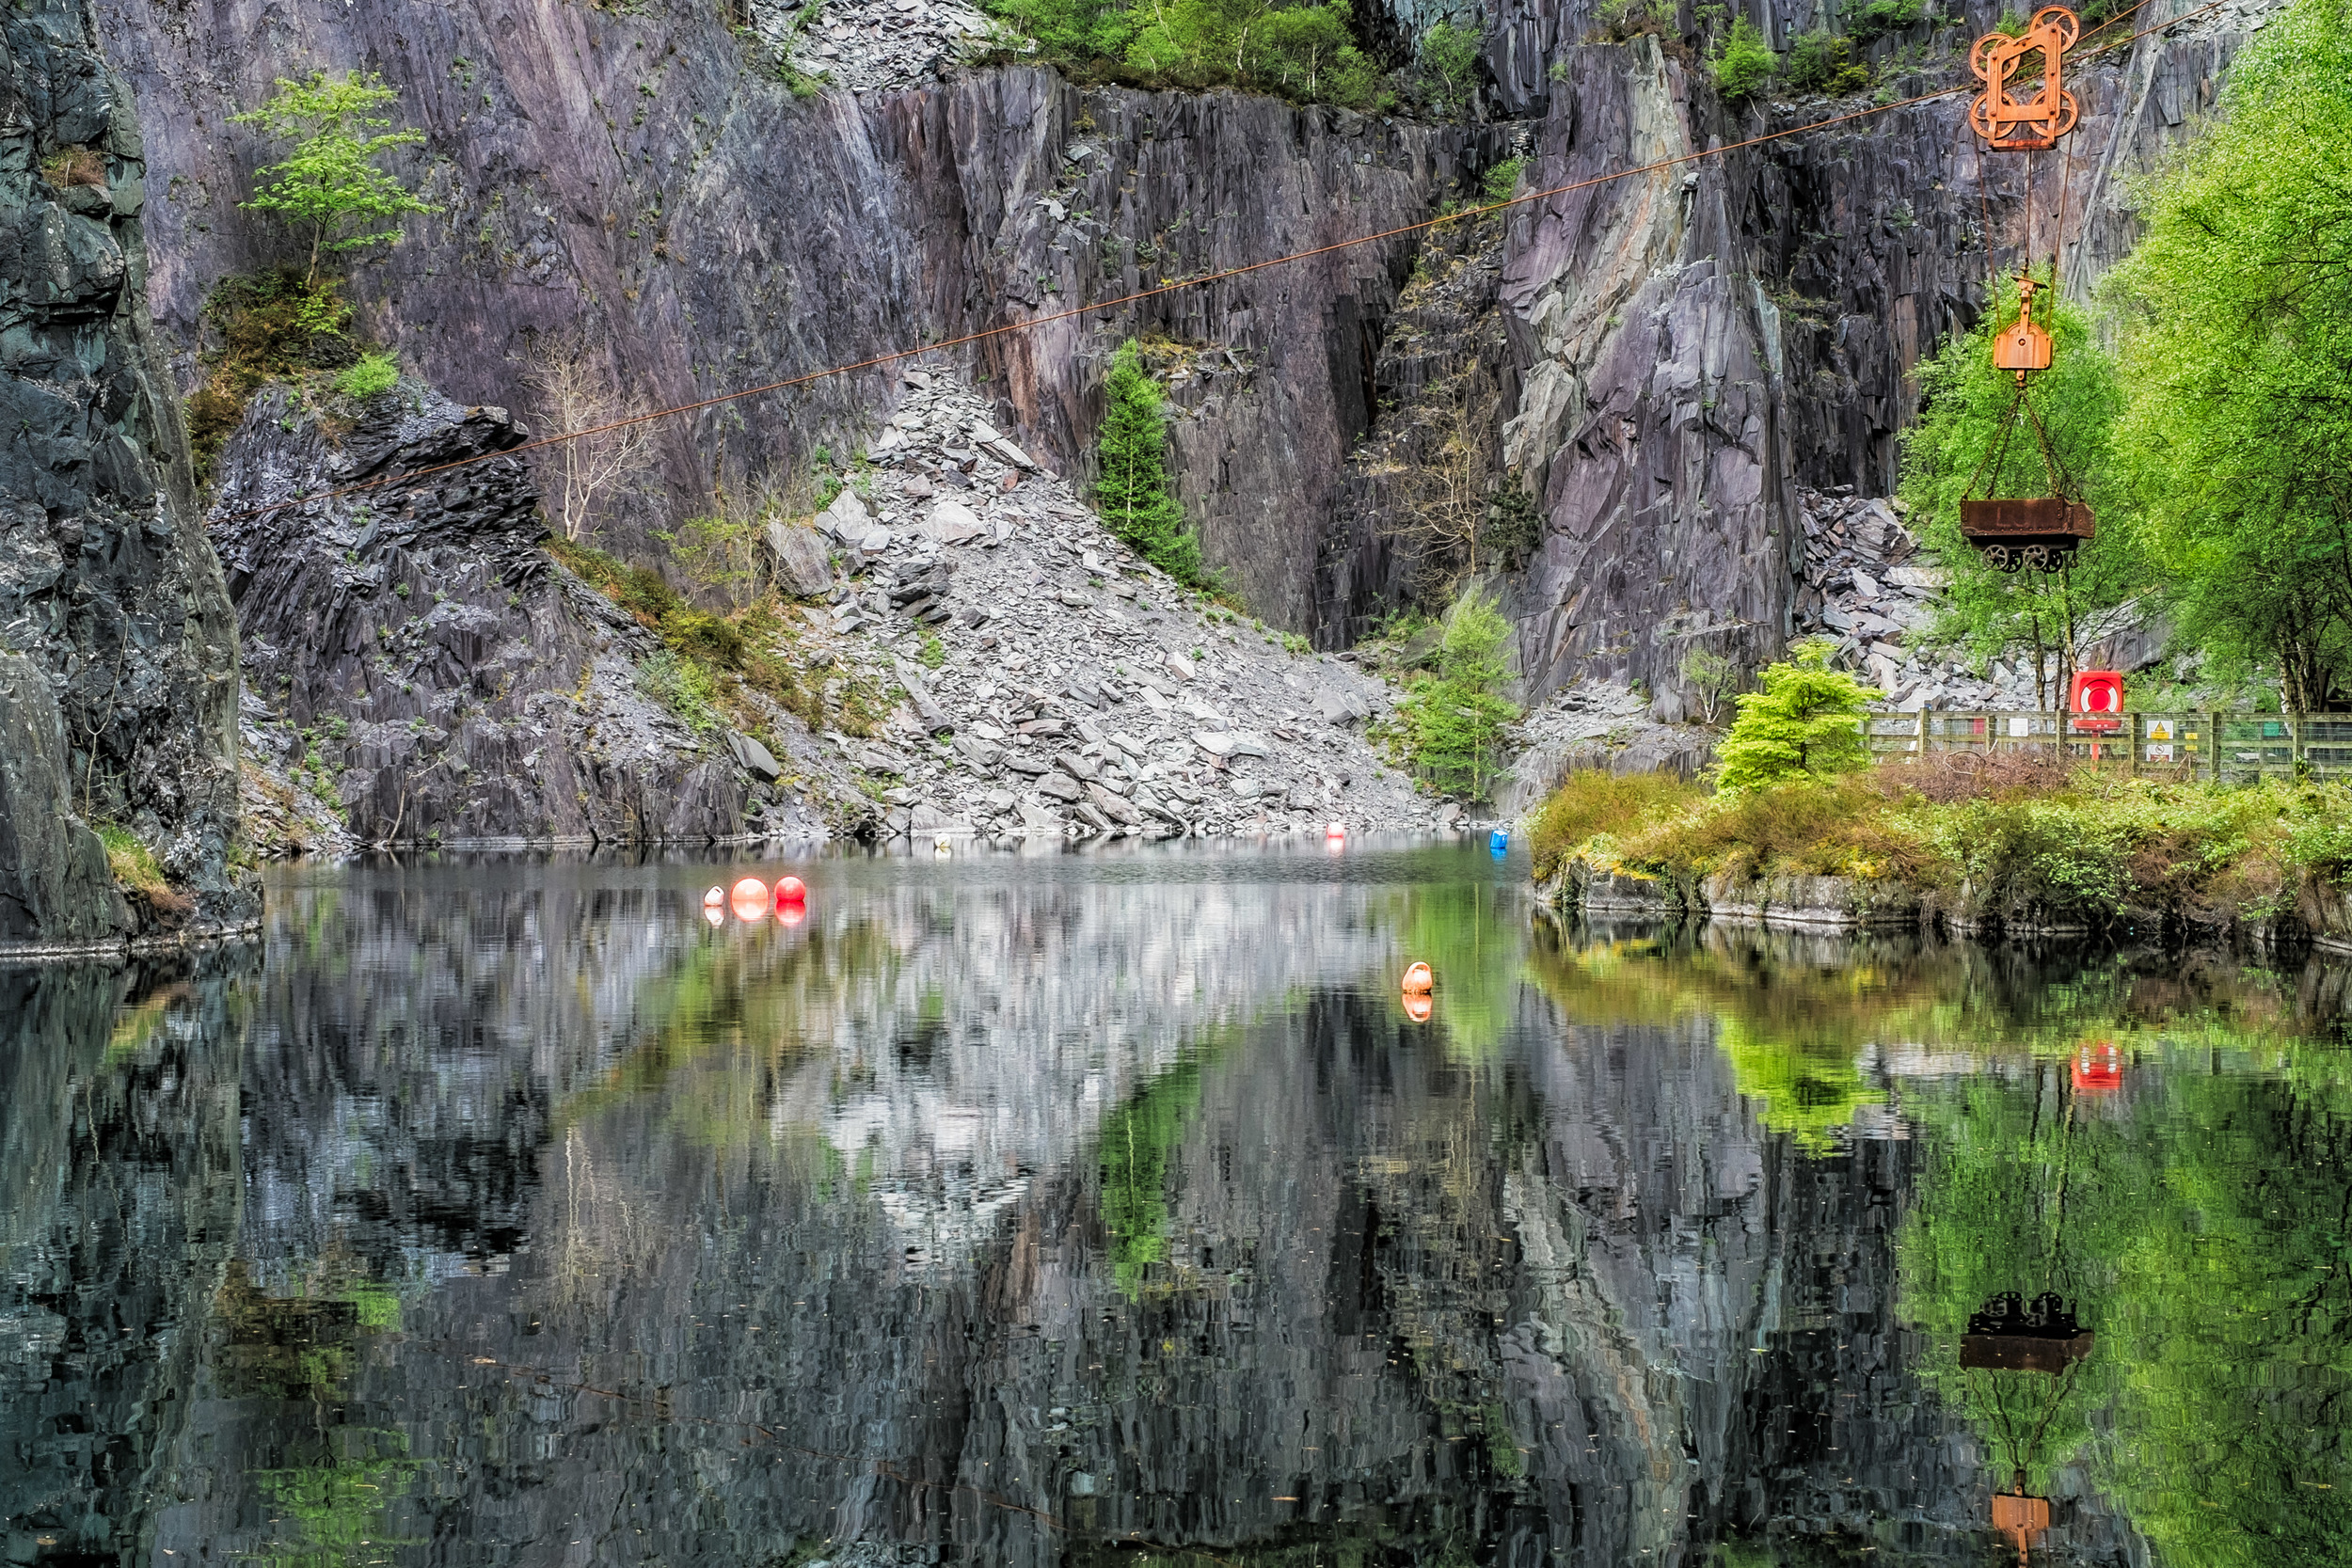 Vivian quarry, part of Dinorwic Quarry in Llanberis, North Wales. X-Pro1 + XF 35mm f/1.4  @ f/16. ISO200. 1/10.